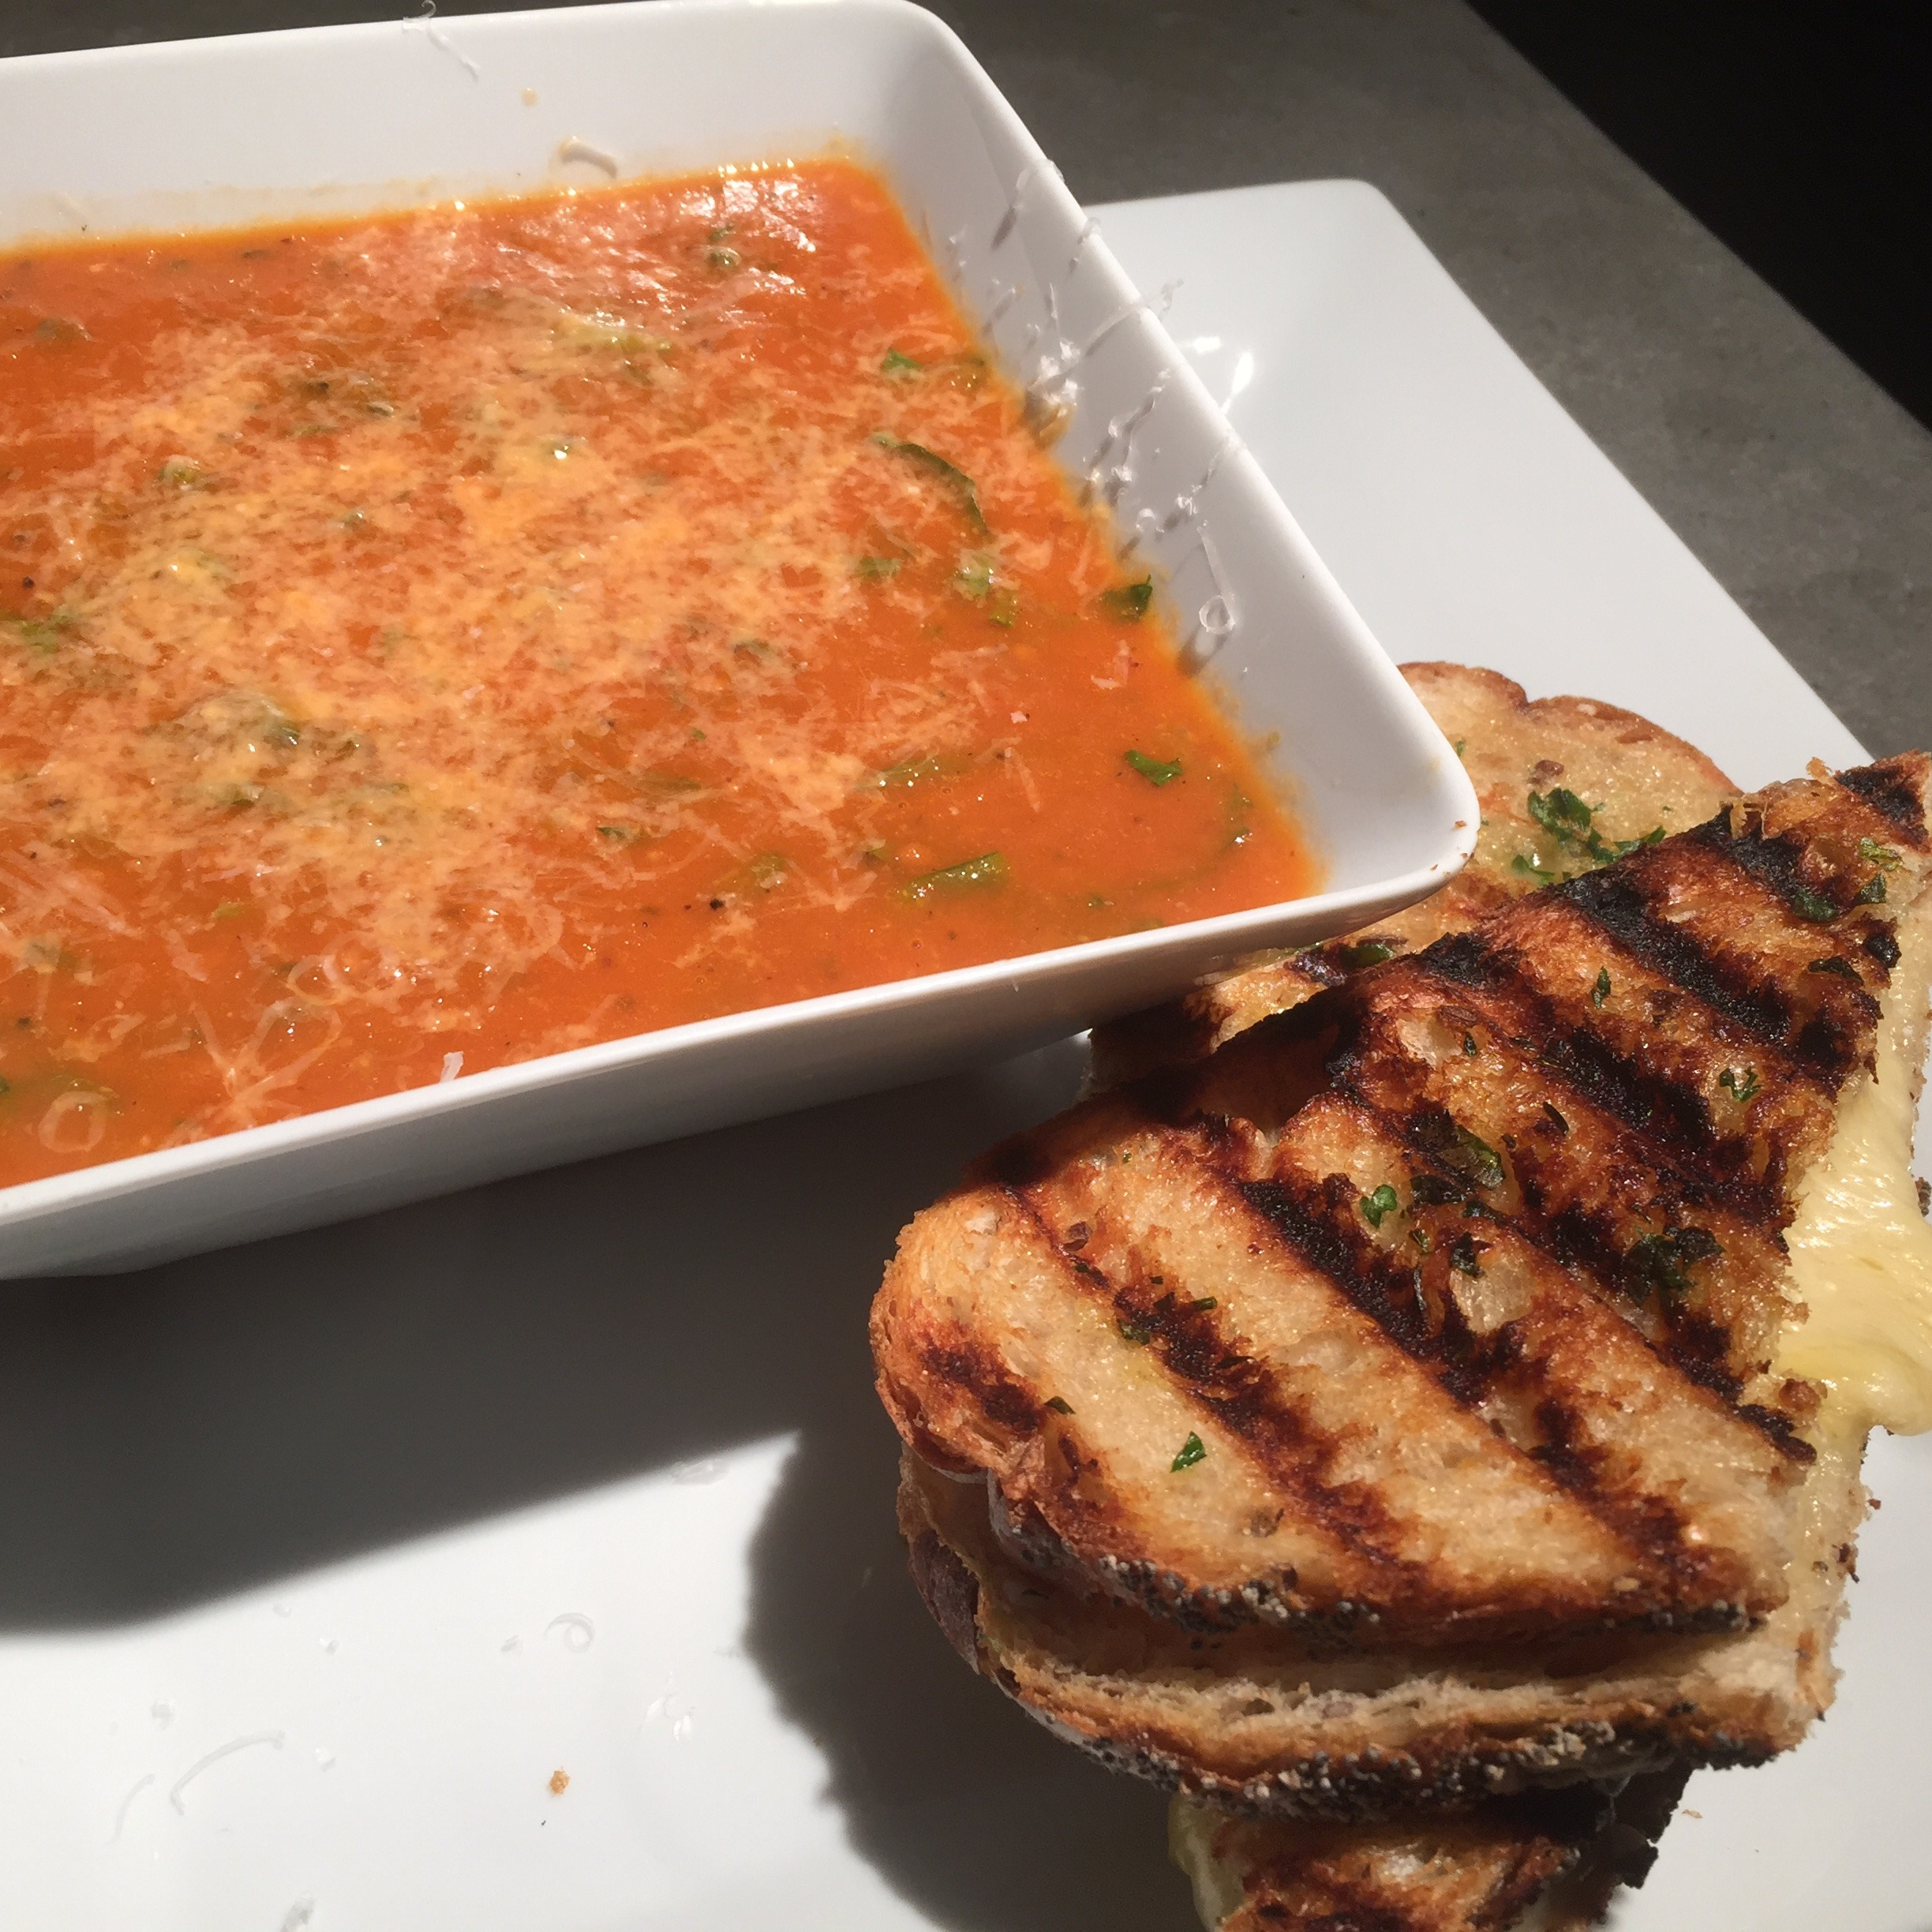 a spin on a classic – roasted tomato soup and gourmet grilled cheese